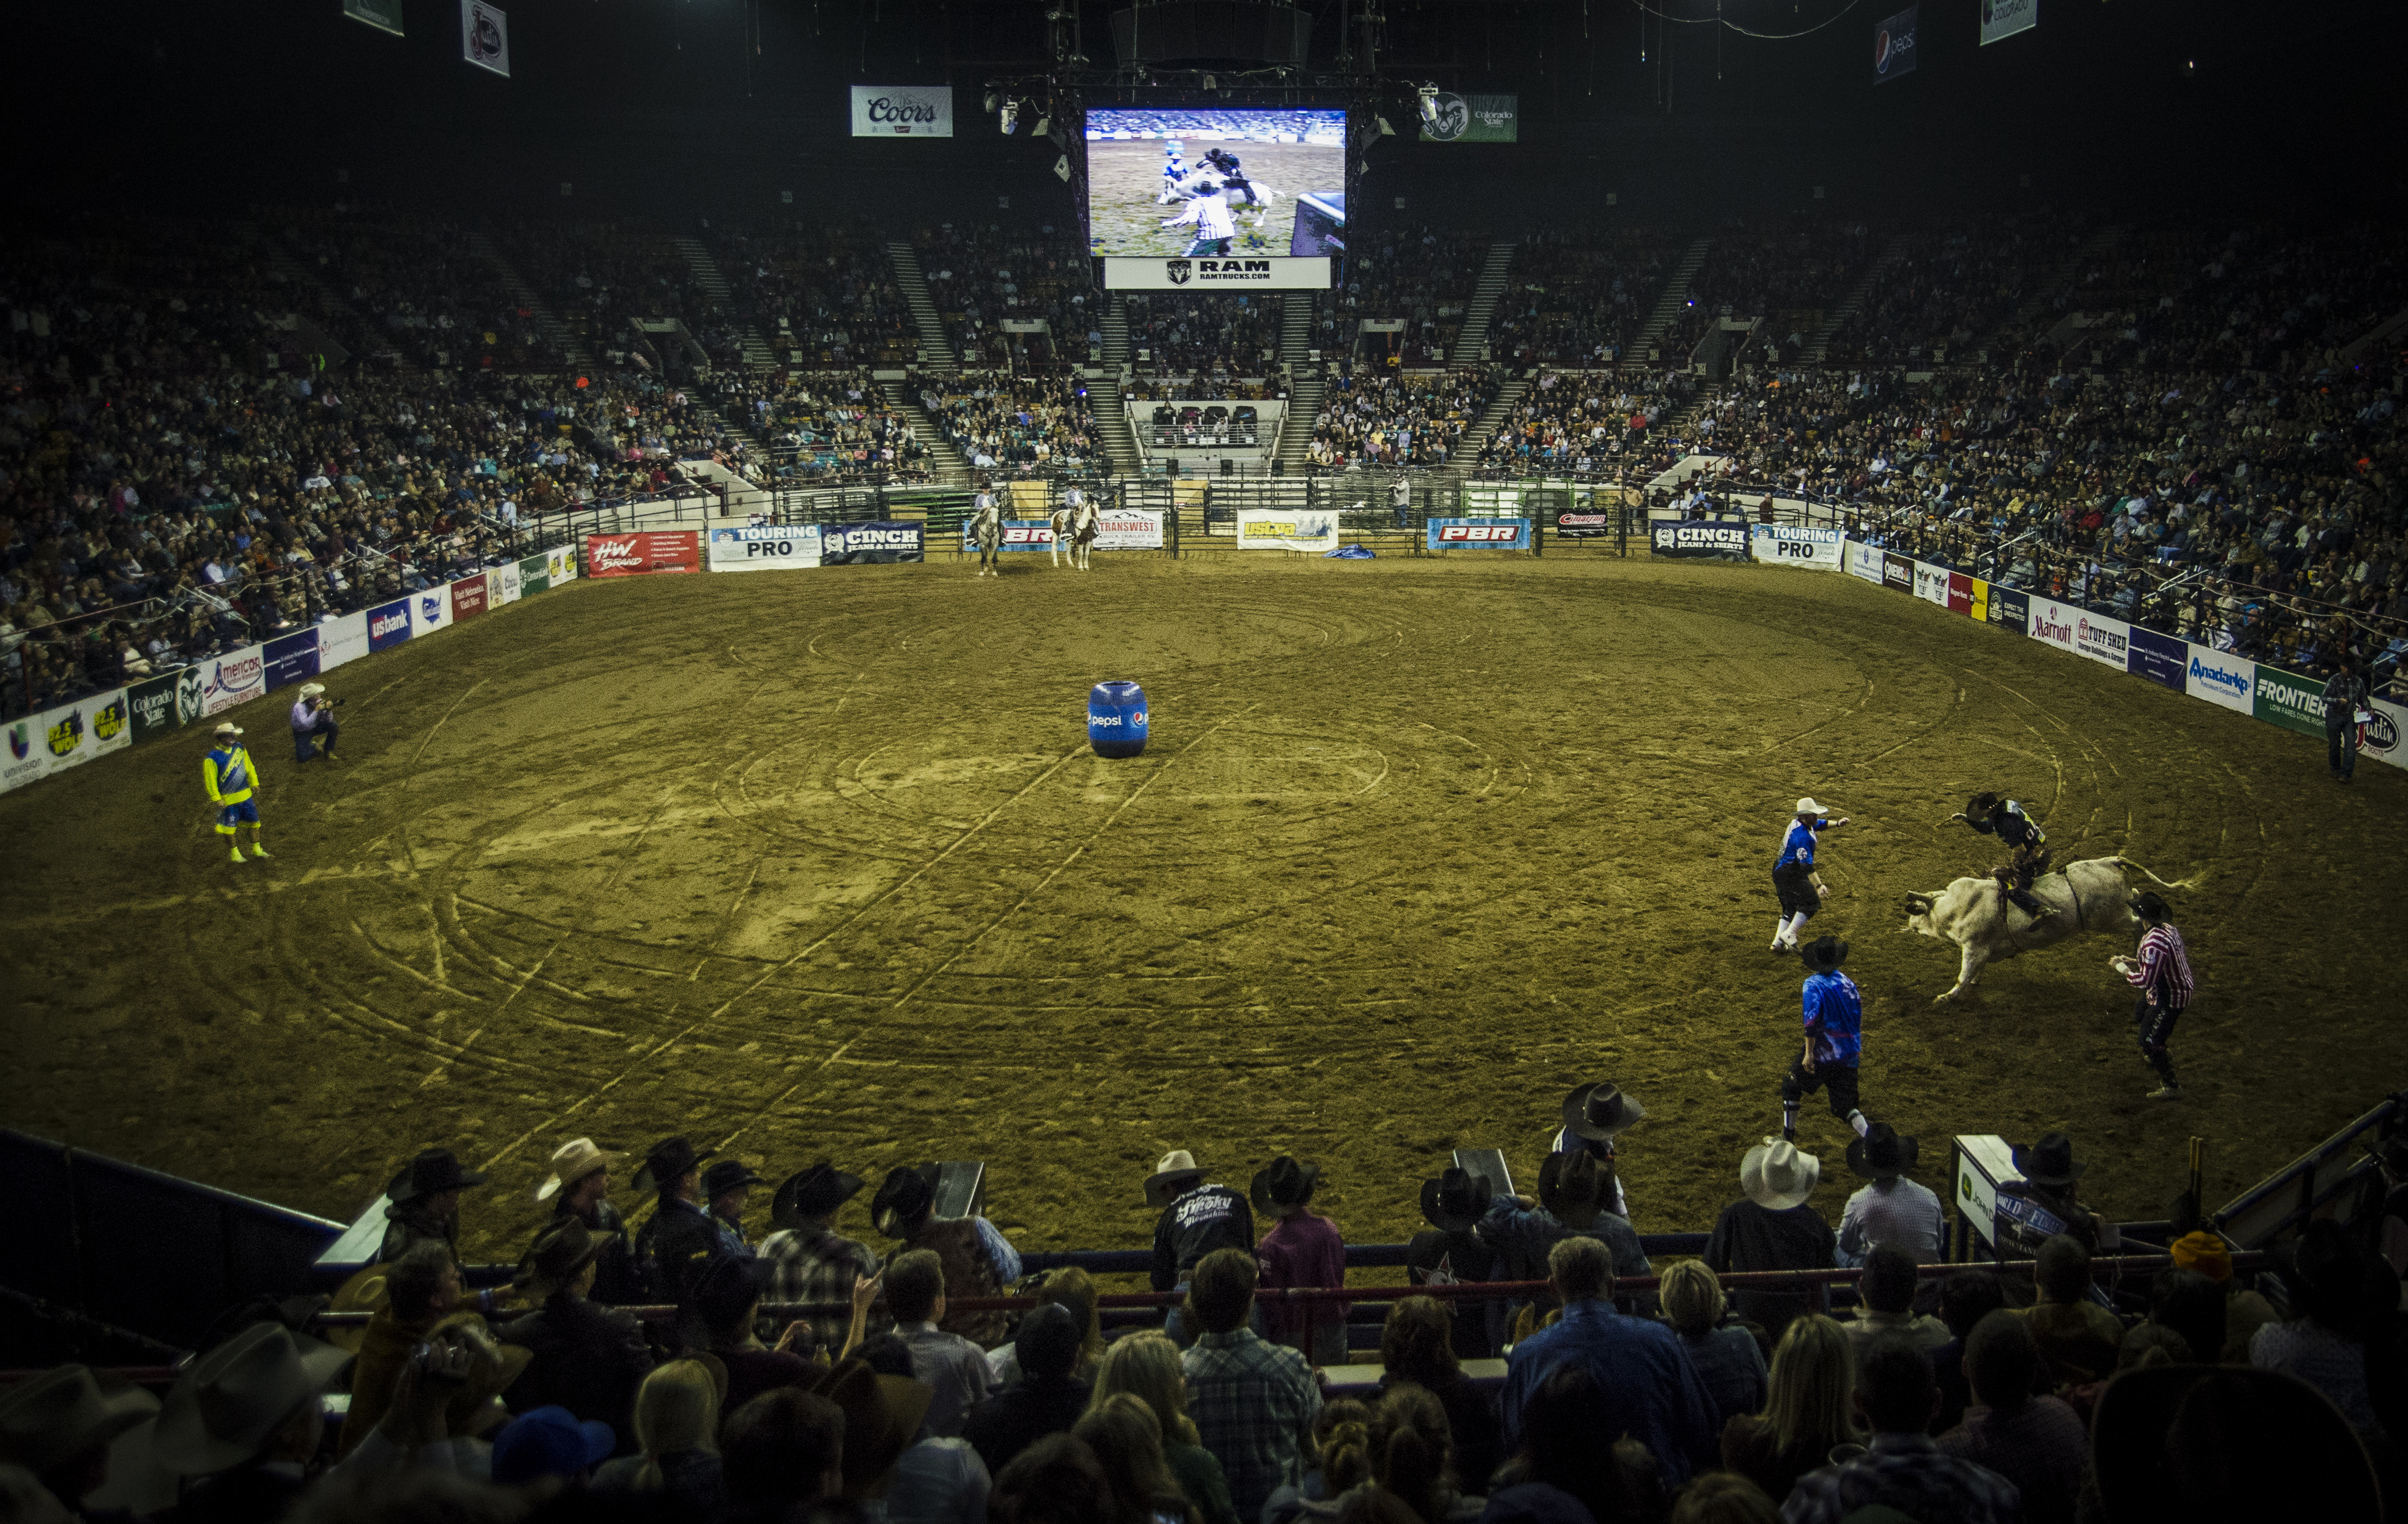 Photo: Stock Show 13 PBR finals